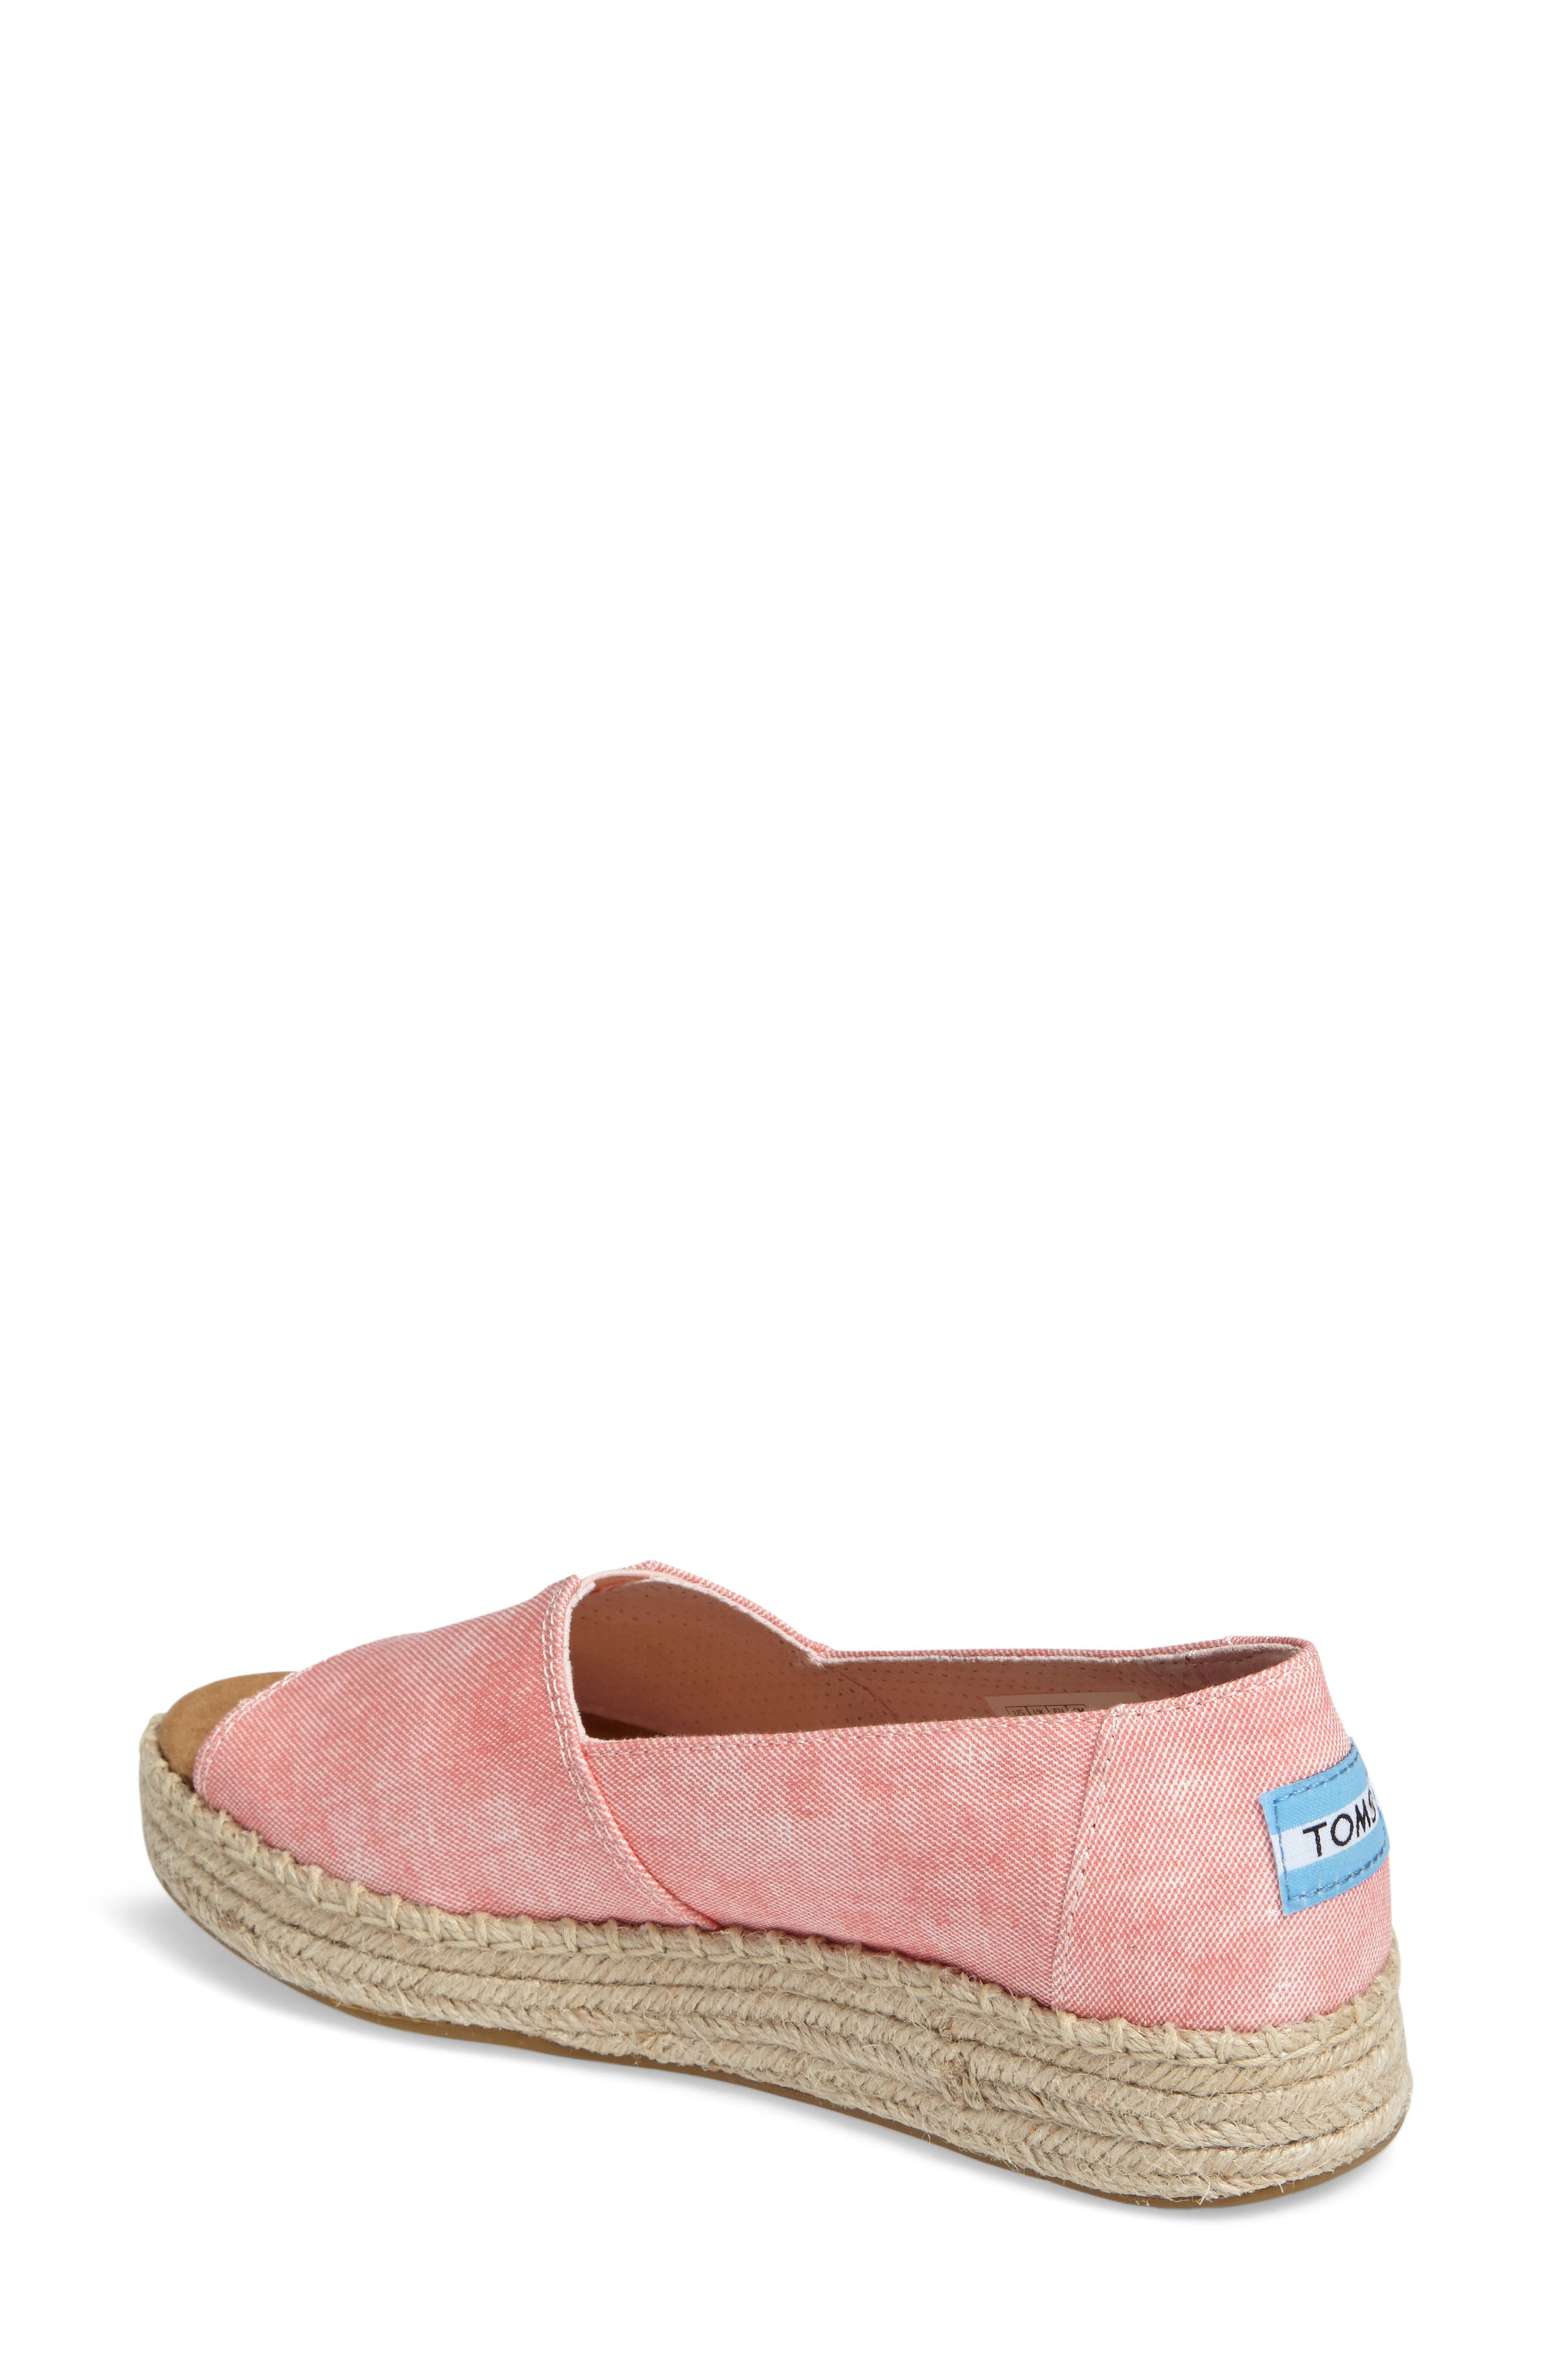 Alternate Image 2  - TOMS Open Toe Platform Espadrille (Women)